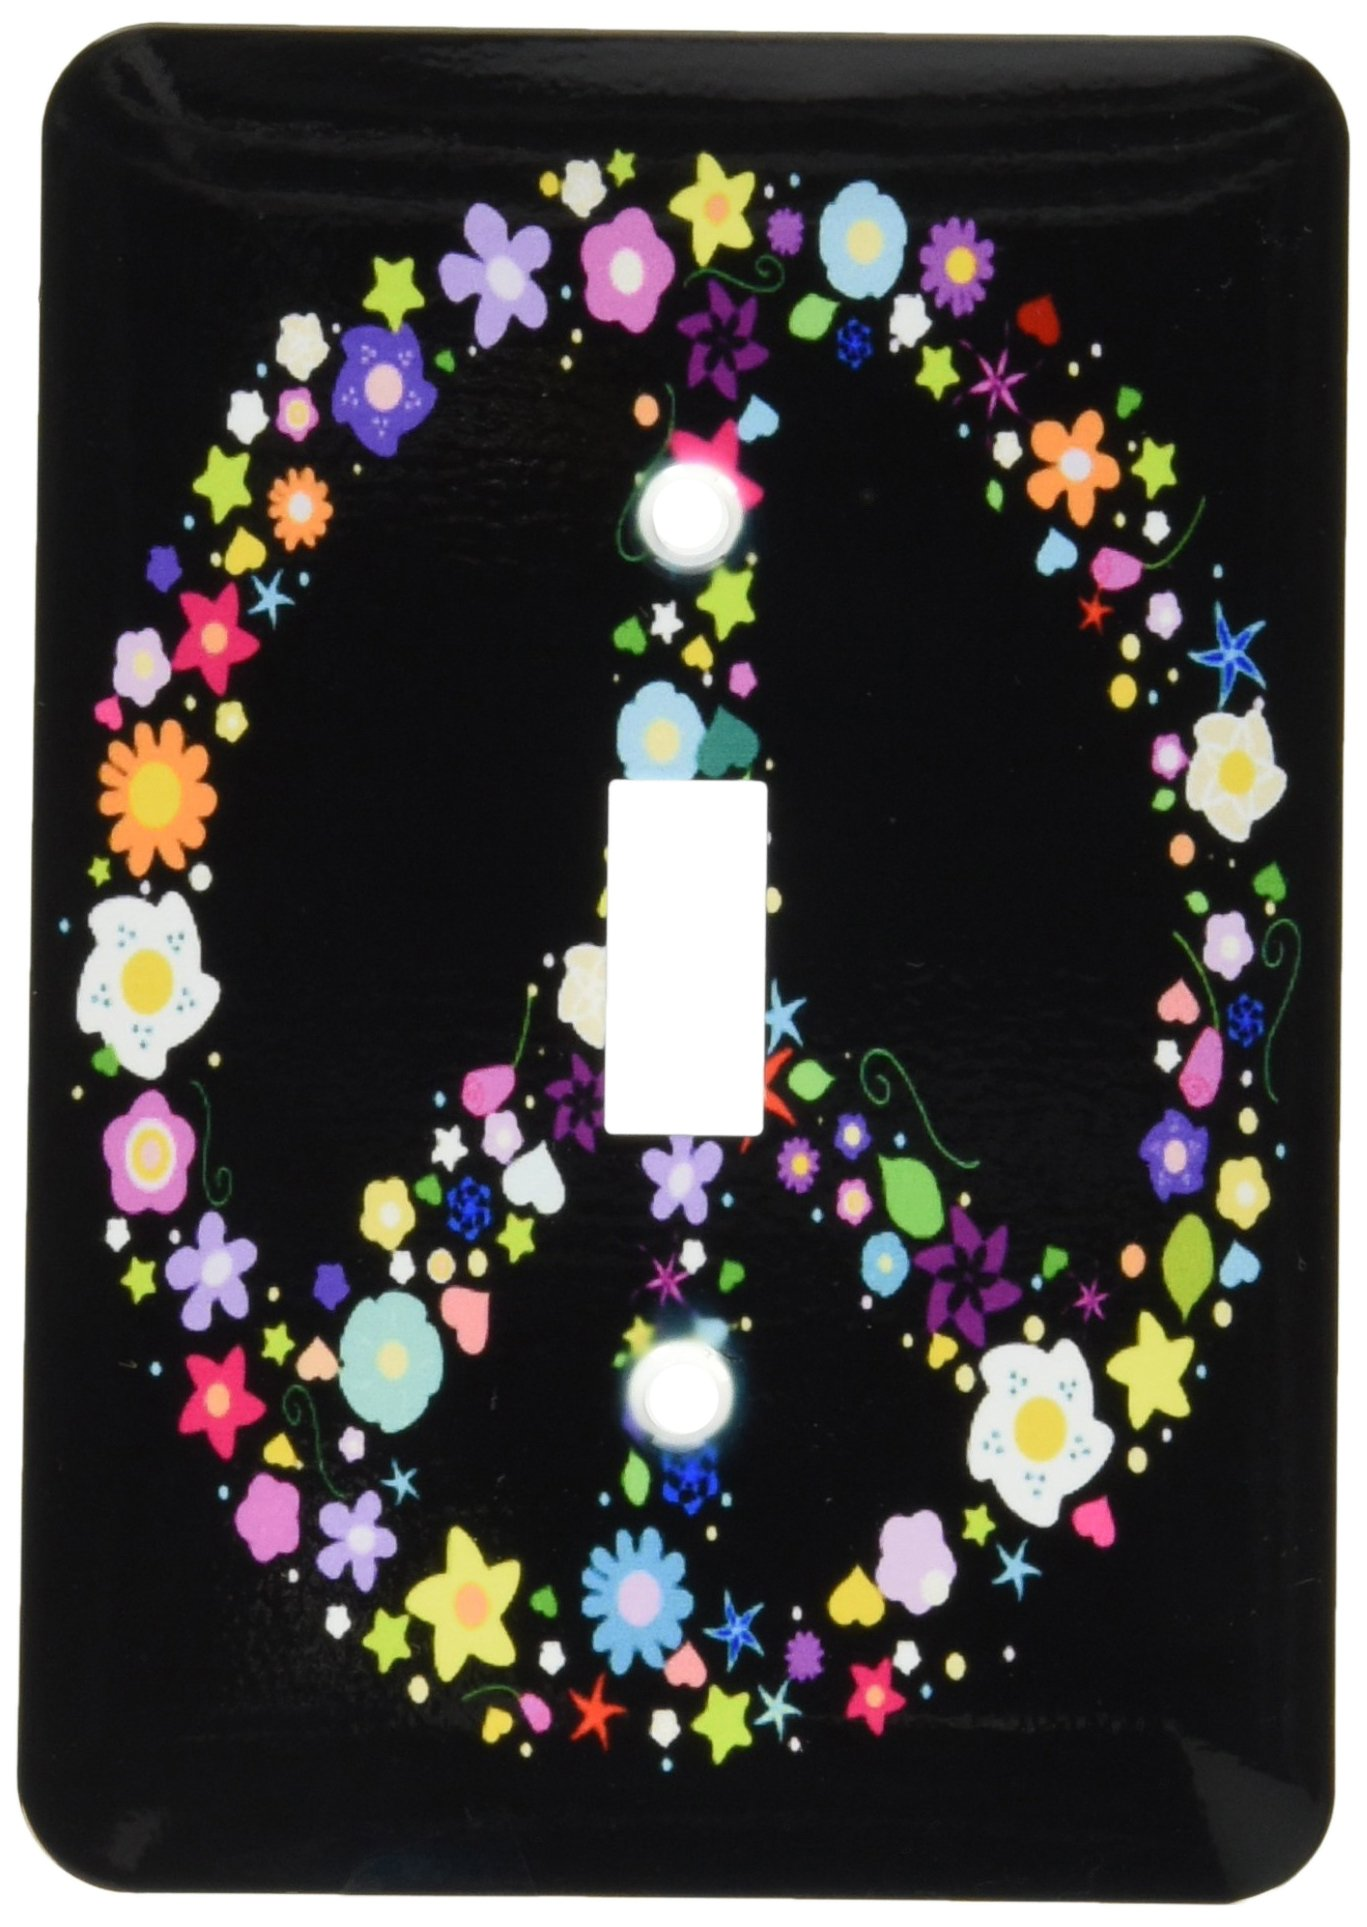 3dRose lsp_58312_1 Floral Peace Symbol Flowery Hippy Or Hippie Sign Flower Power Colorful Flowers on Black Light Switch Cover